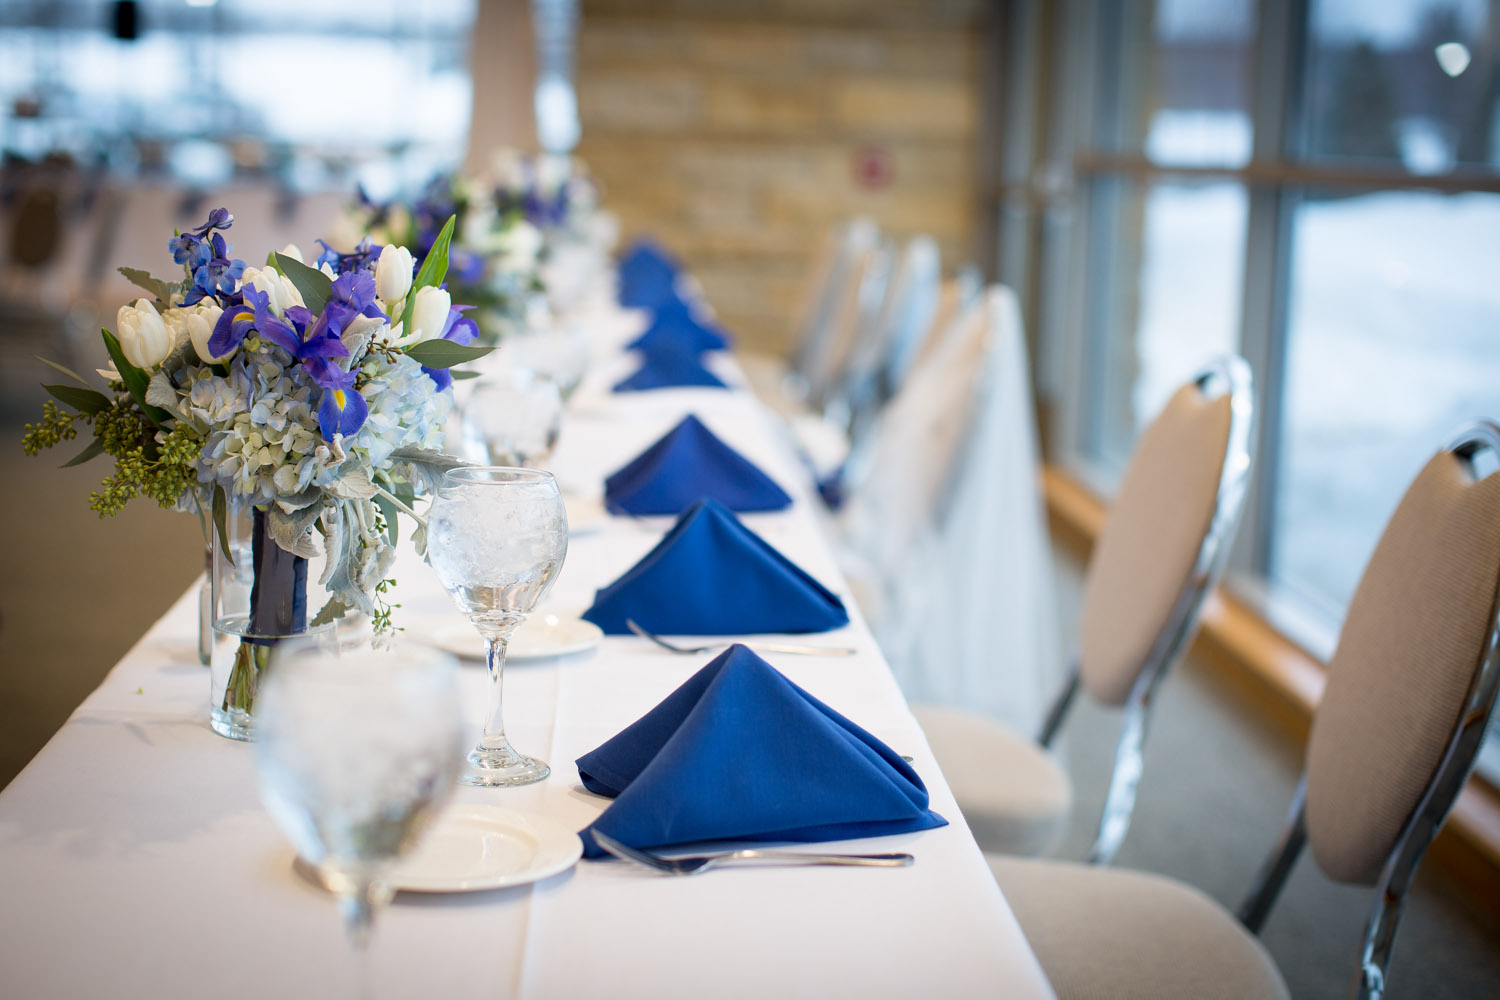 20-eagan-community-center-weddings-minnesota-winter-rain-wedding-reception-head-table-blue-napkins-mahonen-photography.jpg